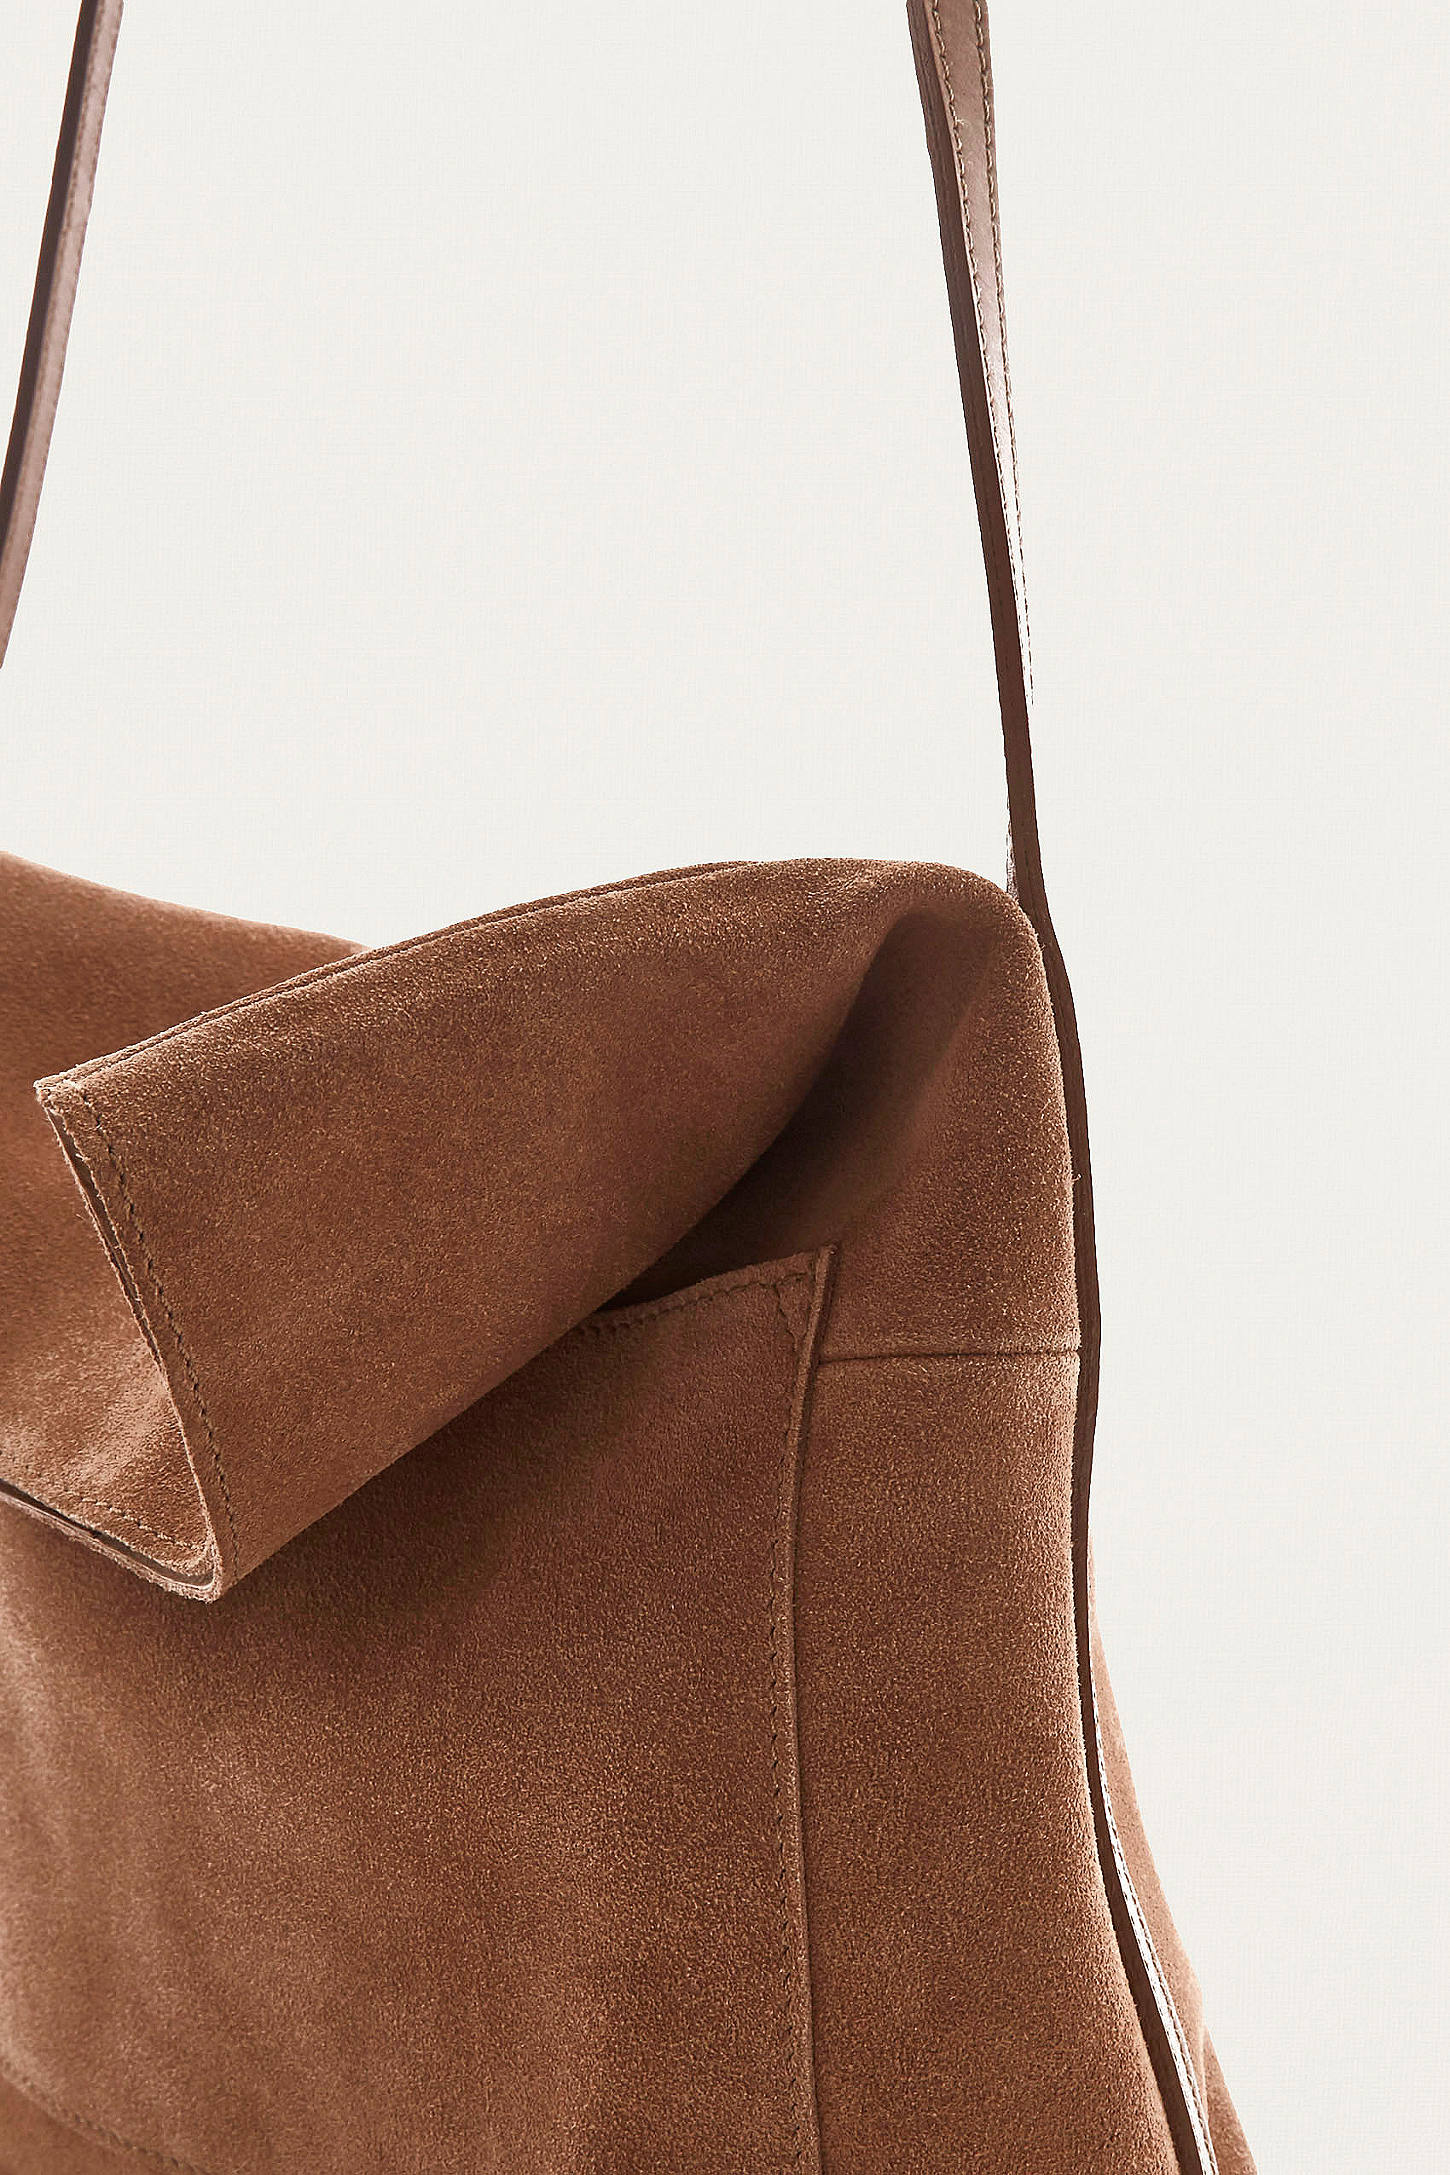 Tan Suede Messenger Bag | Urban Outfitters